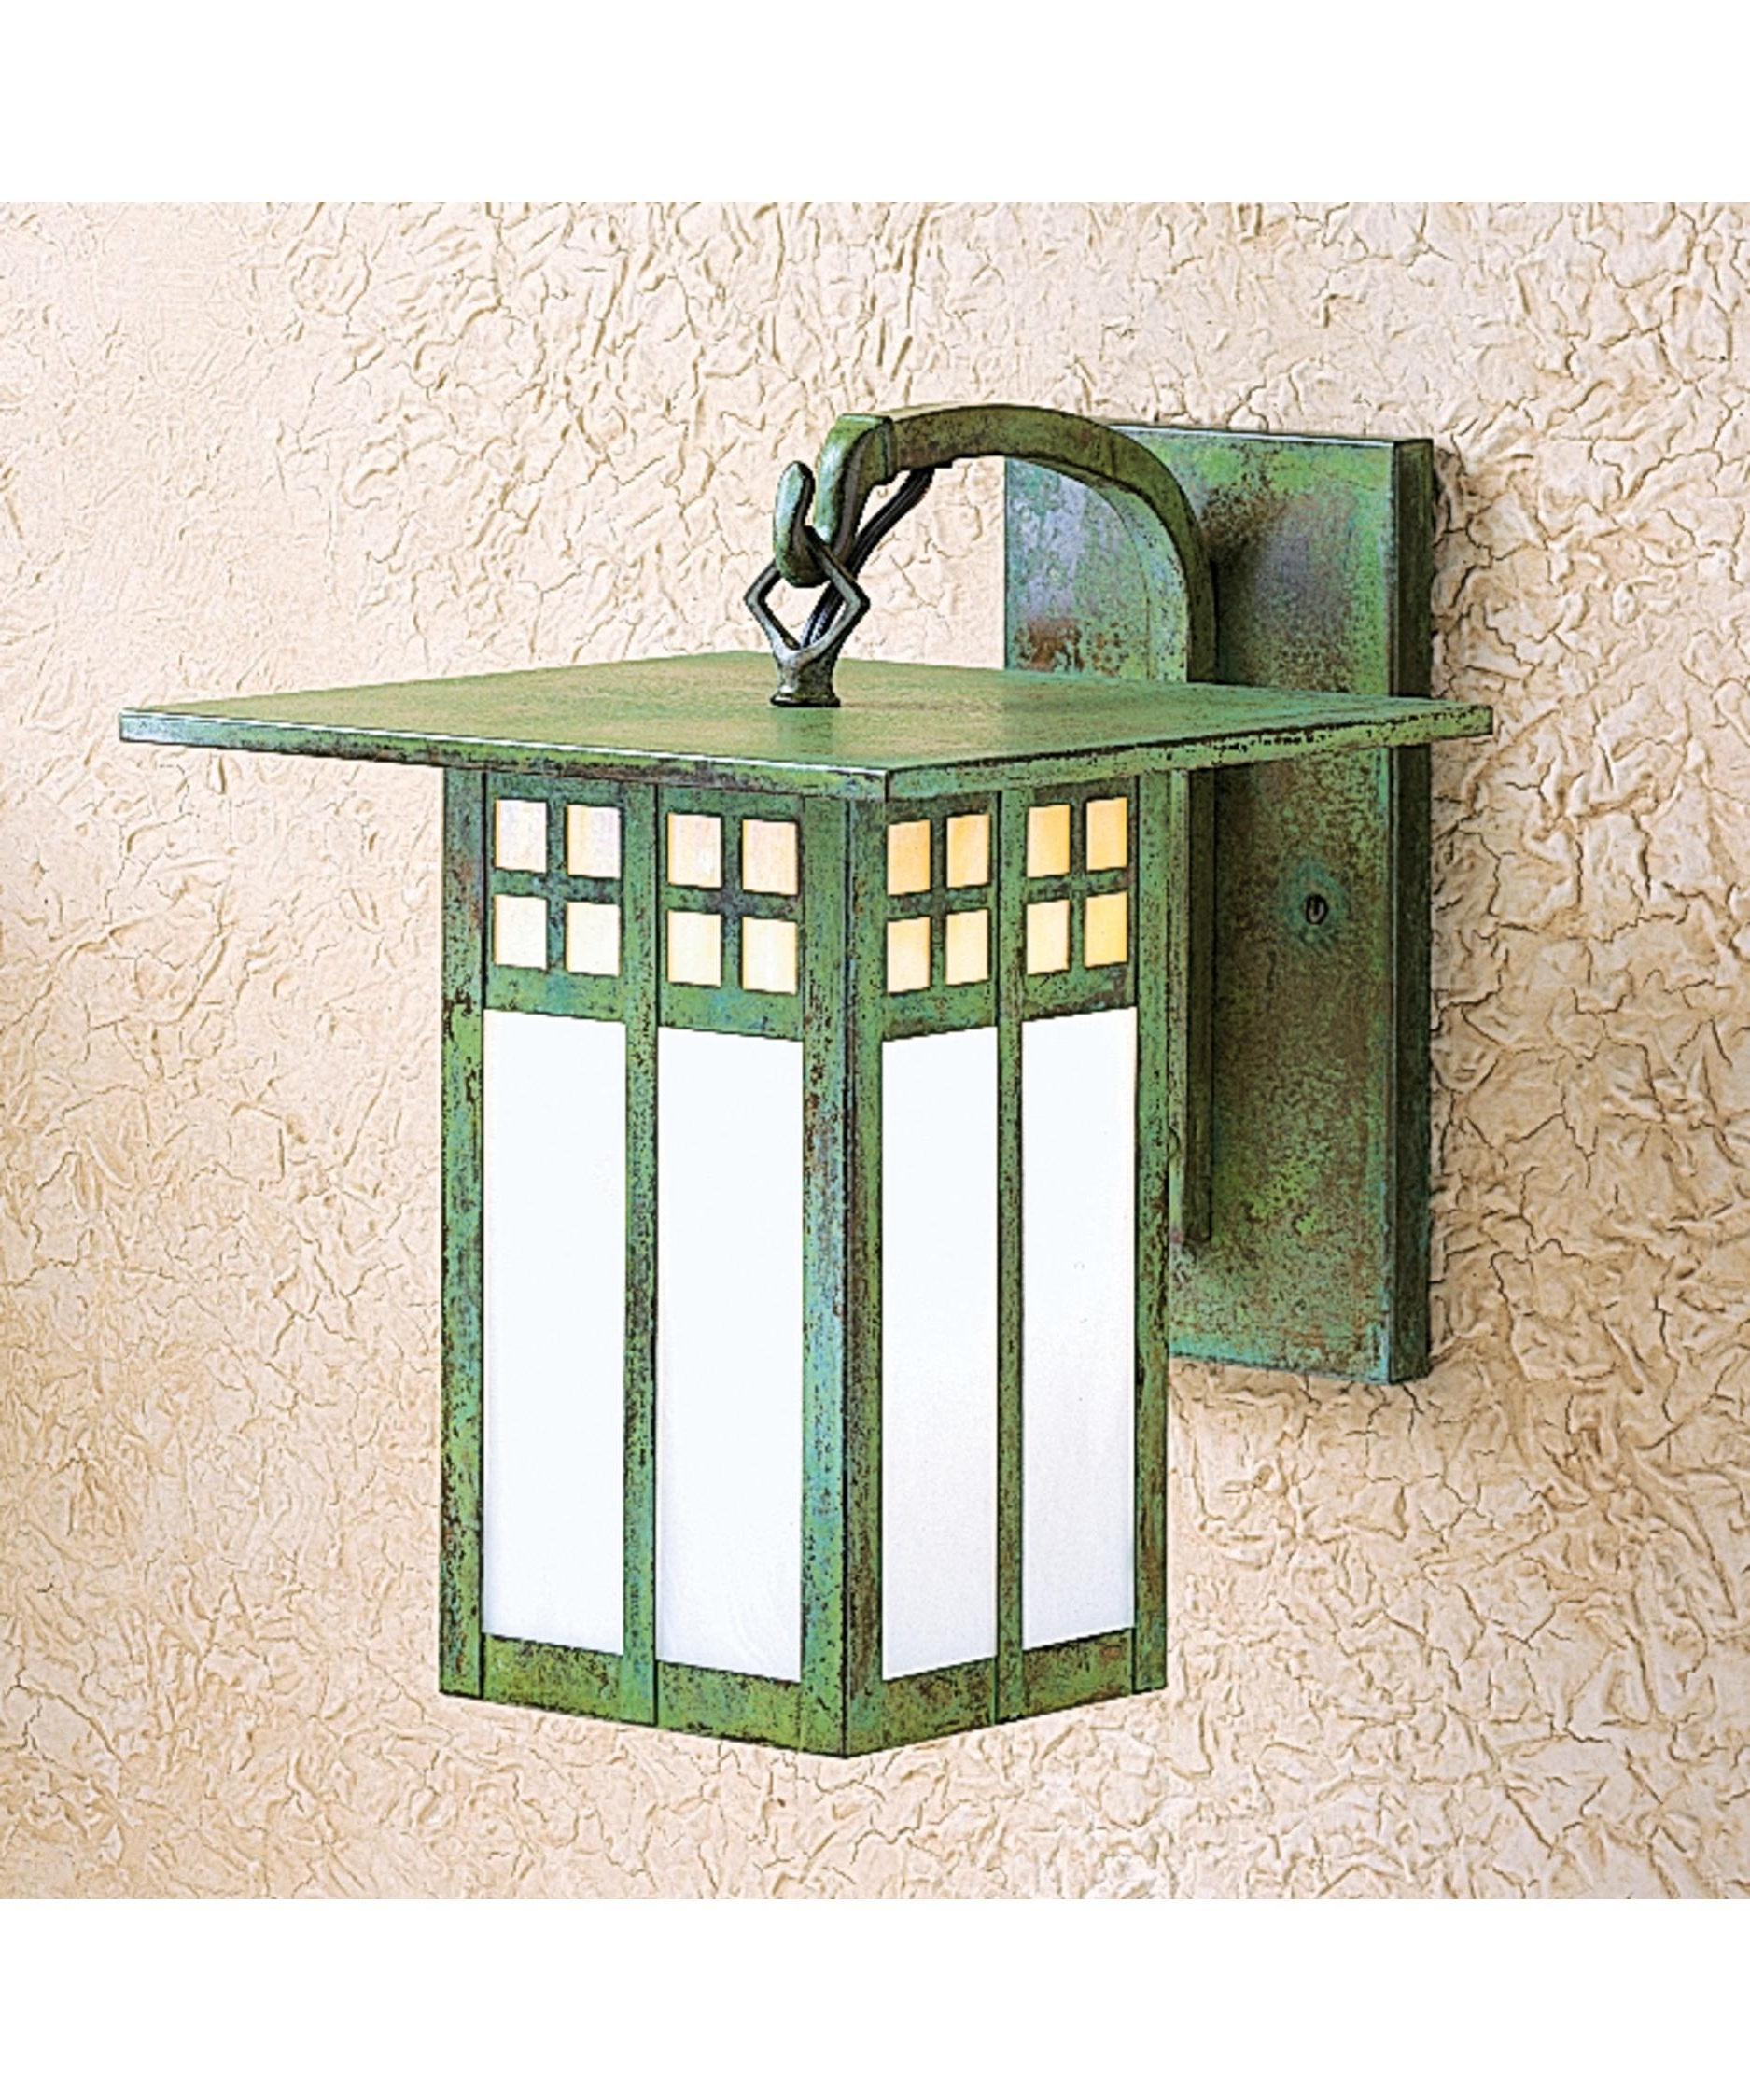 Trendy Craftsman Outdoor Wall Lighting Regarding Arroyo Craftsman Gb 9 Glasgow 9 Inch Wide 1 Light Outdoor Wall Light (View 4 of 20)